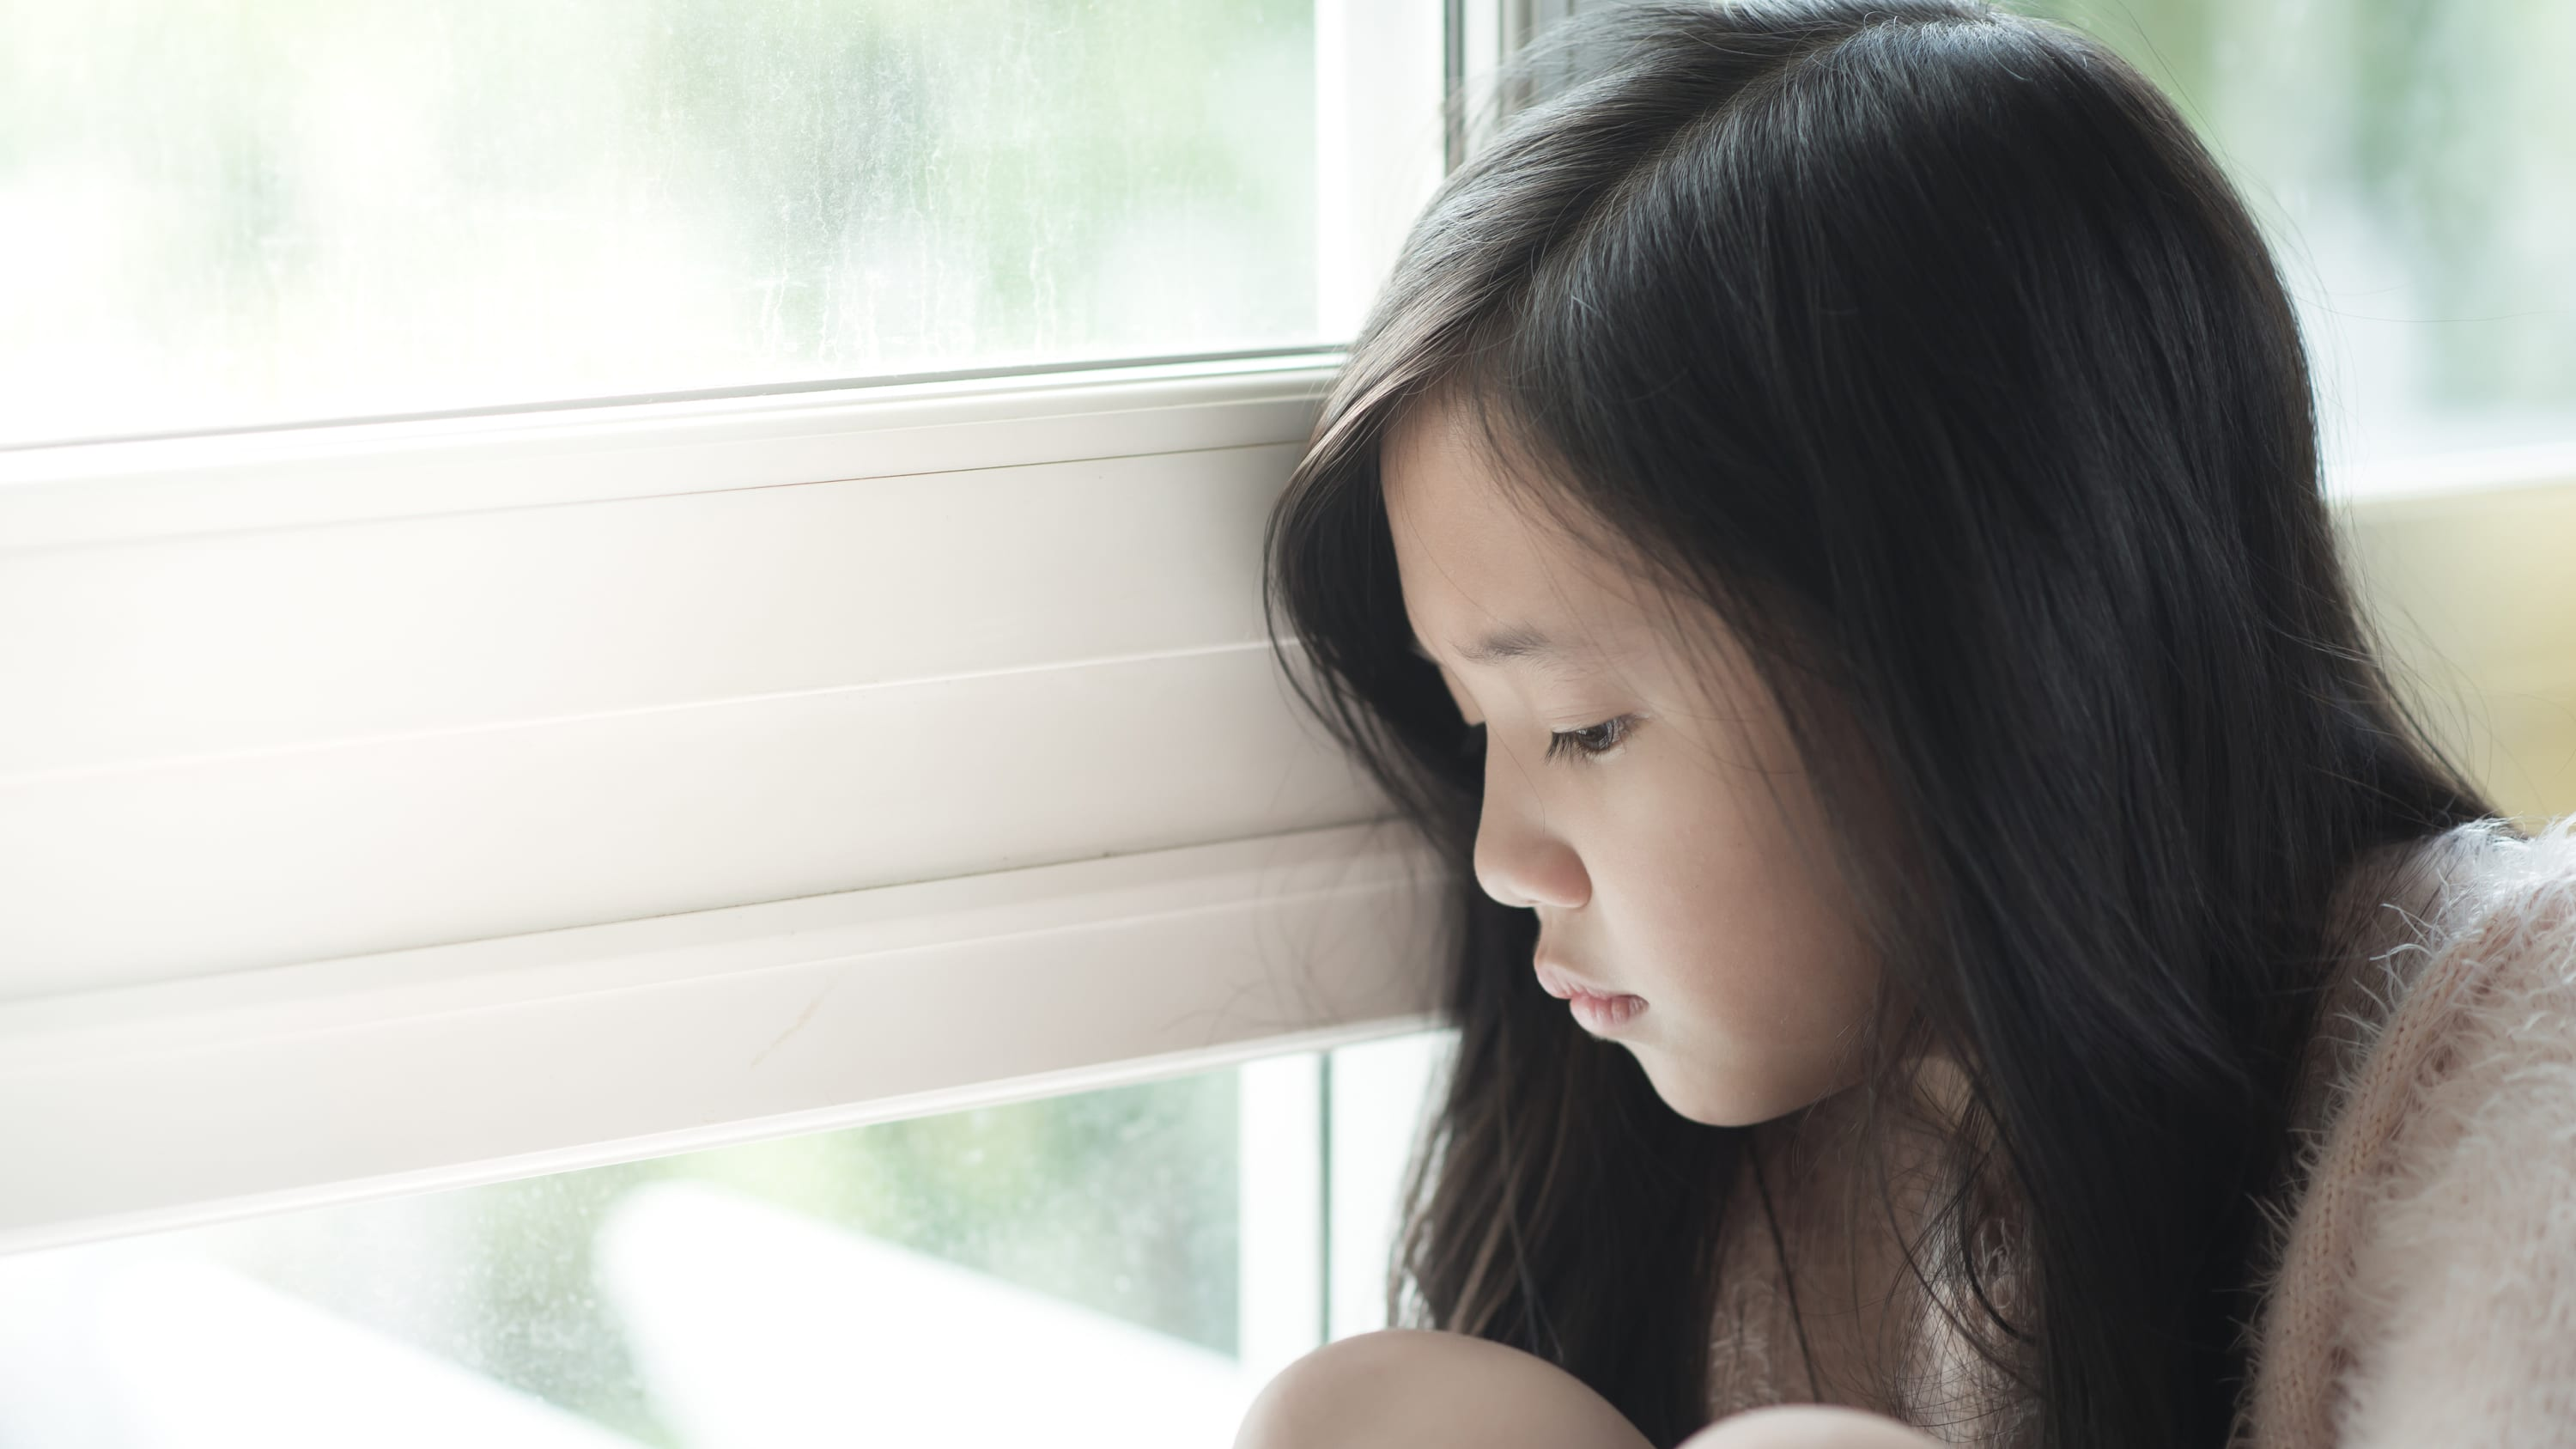 A child who may need a pediatric kidney transplant sits by a window